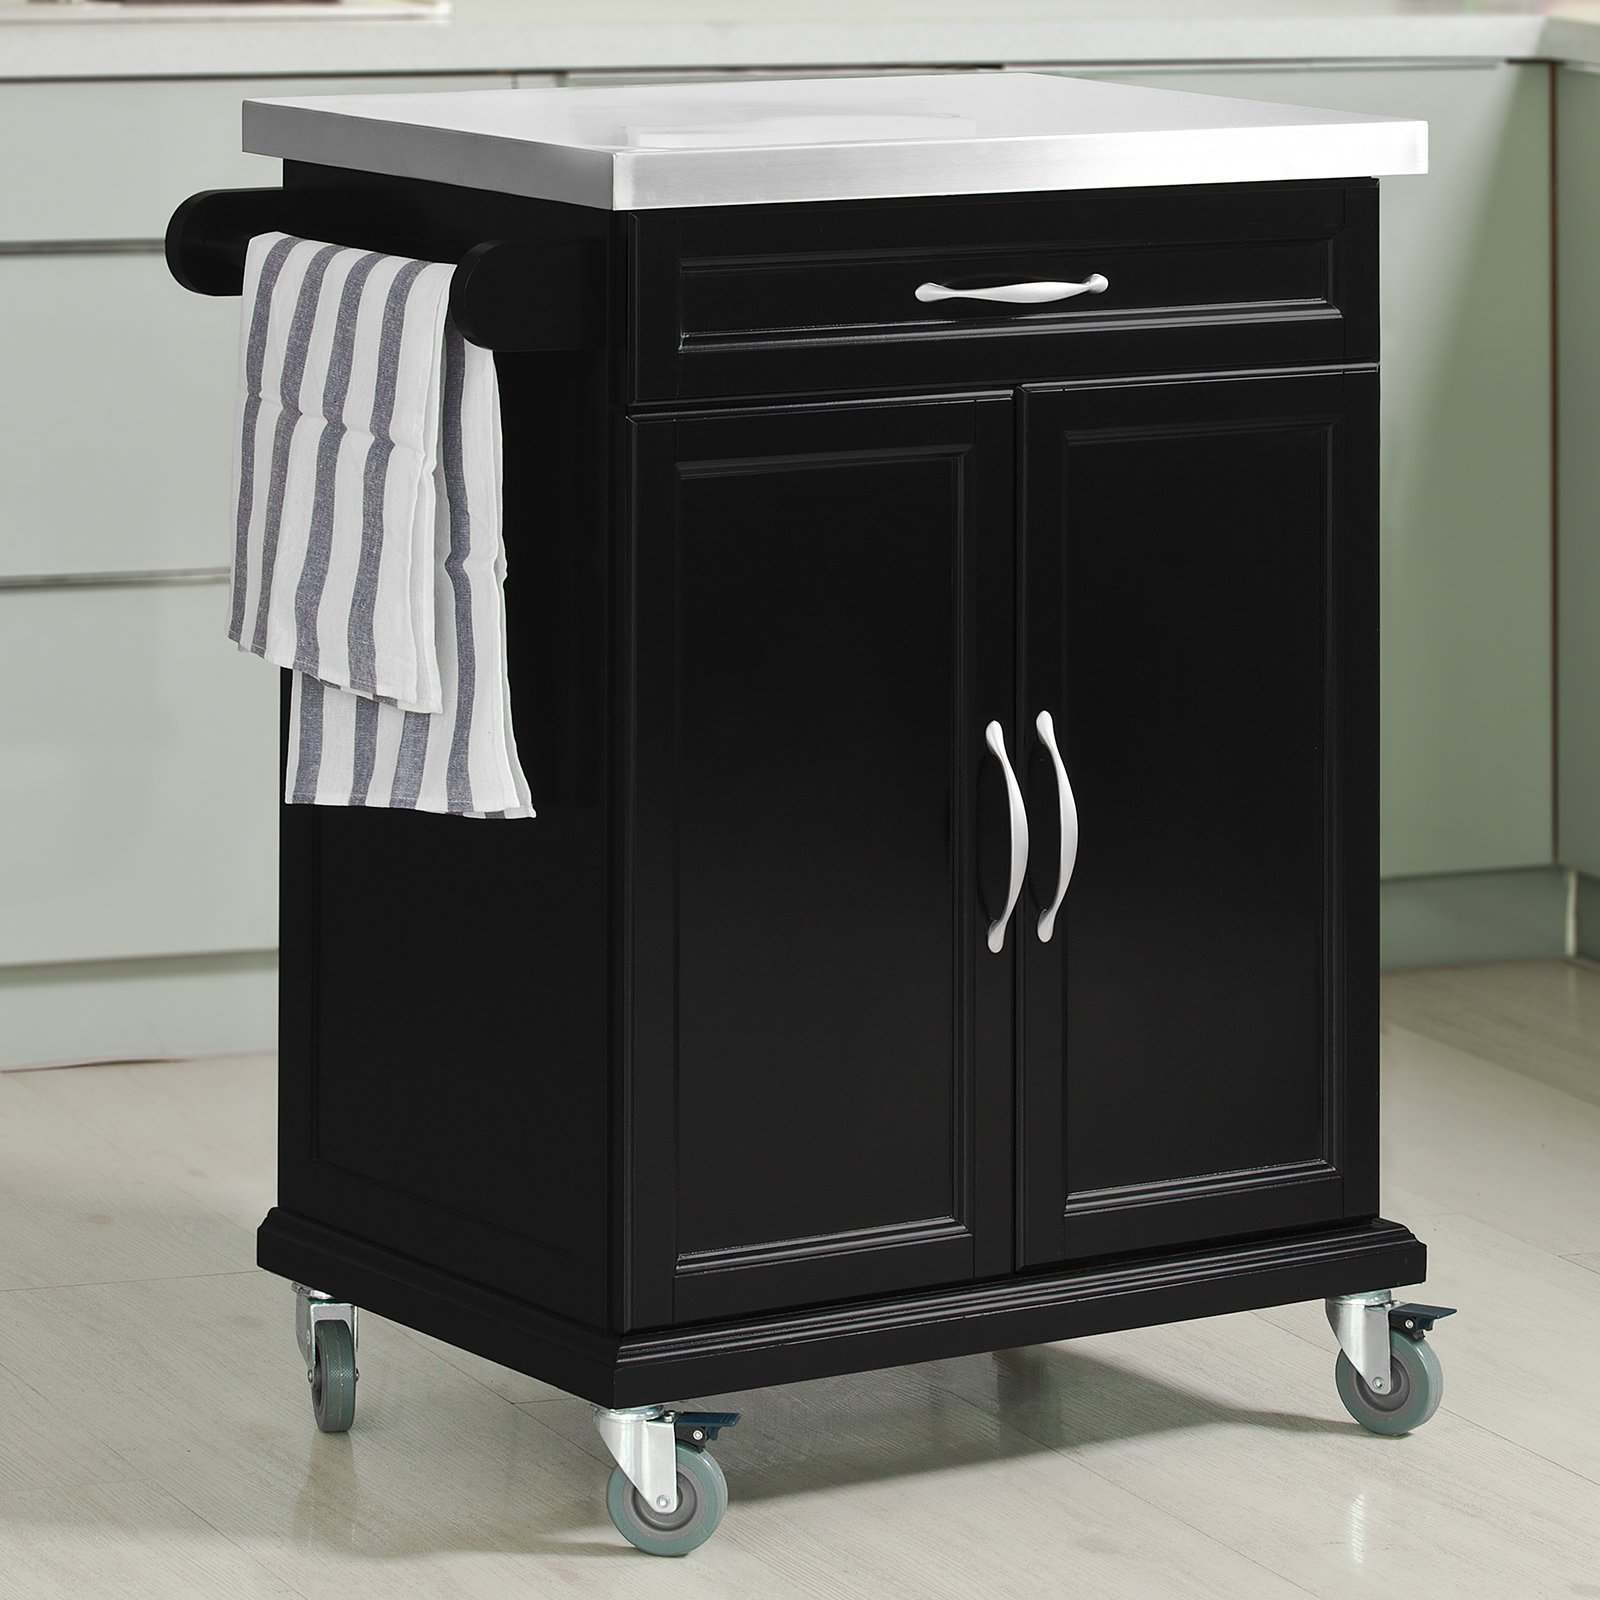 Haotian FKW13-SCH, Wood Kitchen Cabinet, Kitchen Storage Trolley Cart with Stainless Steel Surface and Lockable Wheels, Black